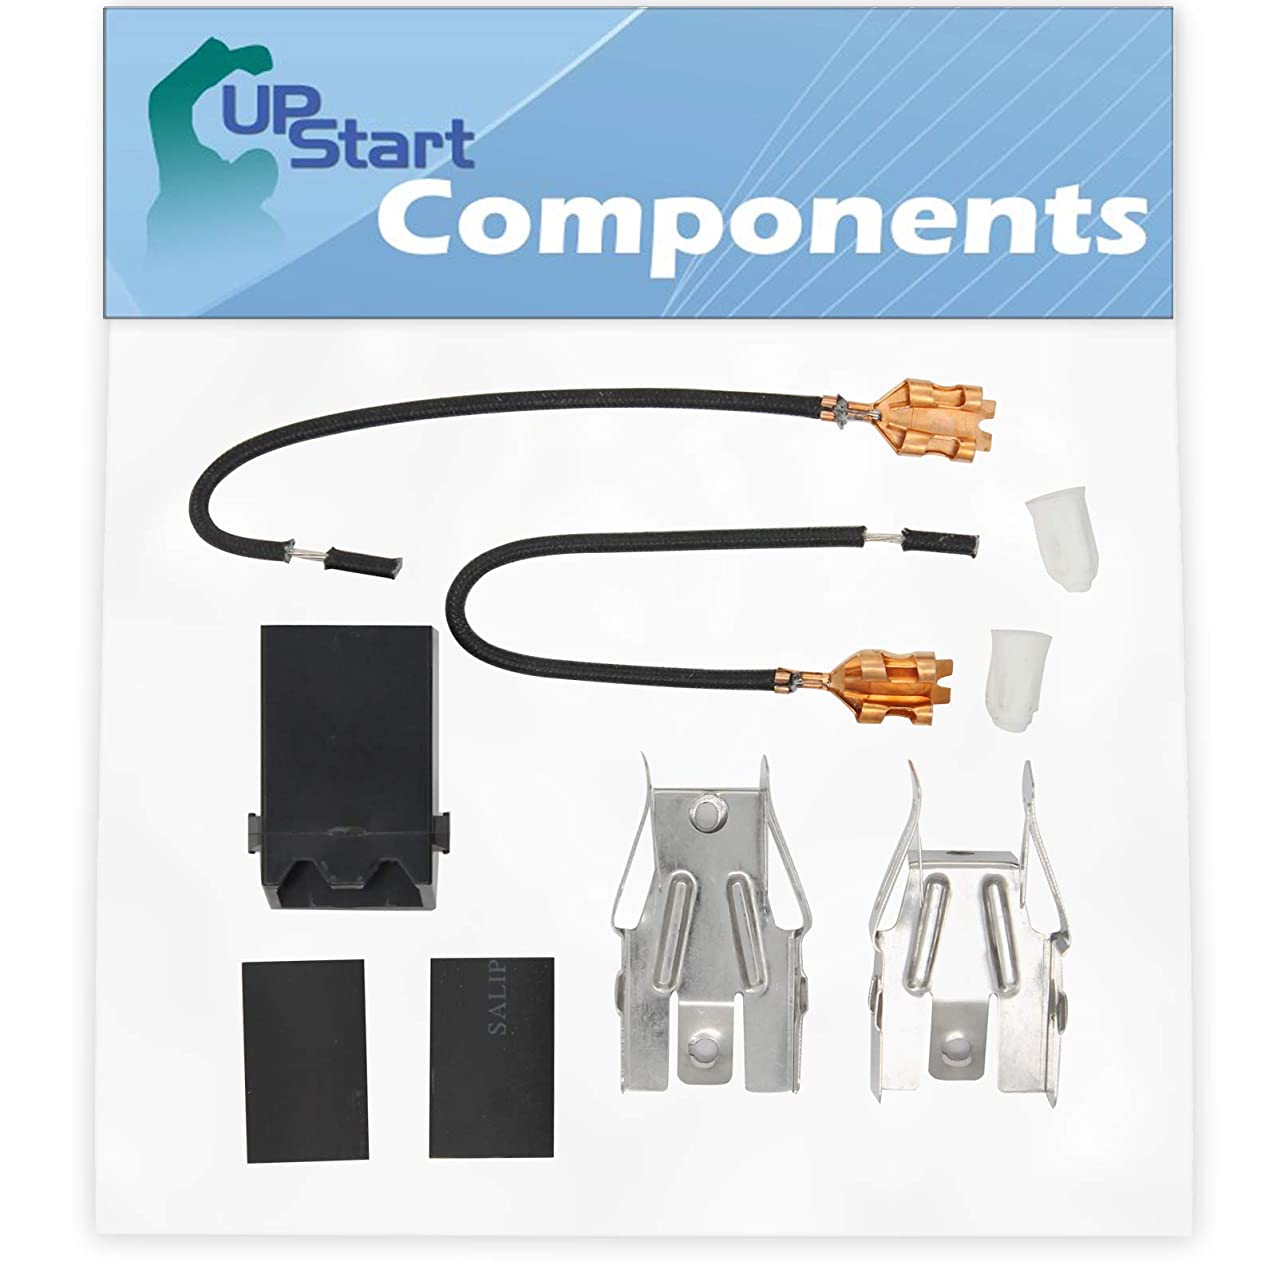 330031 Top Burner Receptacle Kit Replacement for Whirlpool RE960PXVW4 Range/Cooktop/Oven - Compatible with 330031 Range Burner Receptacle Kit - UpStart Components Brand